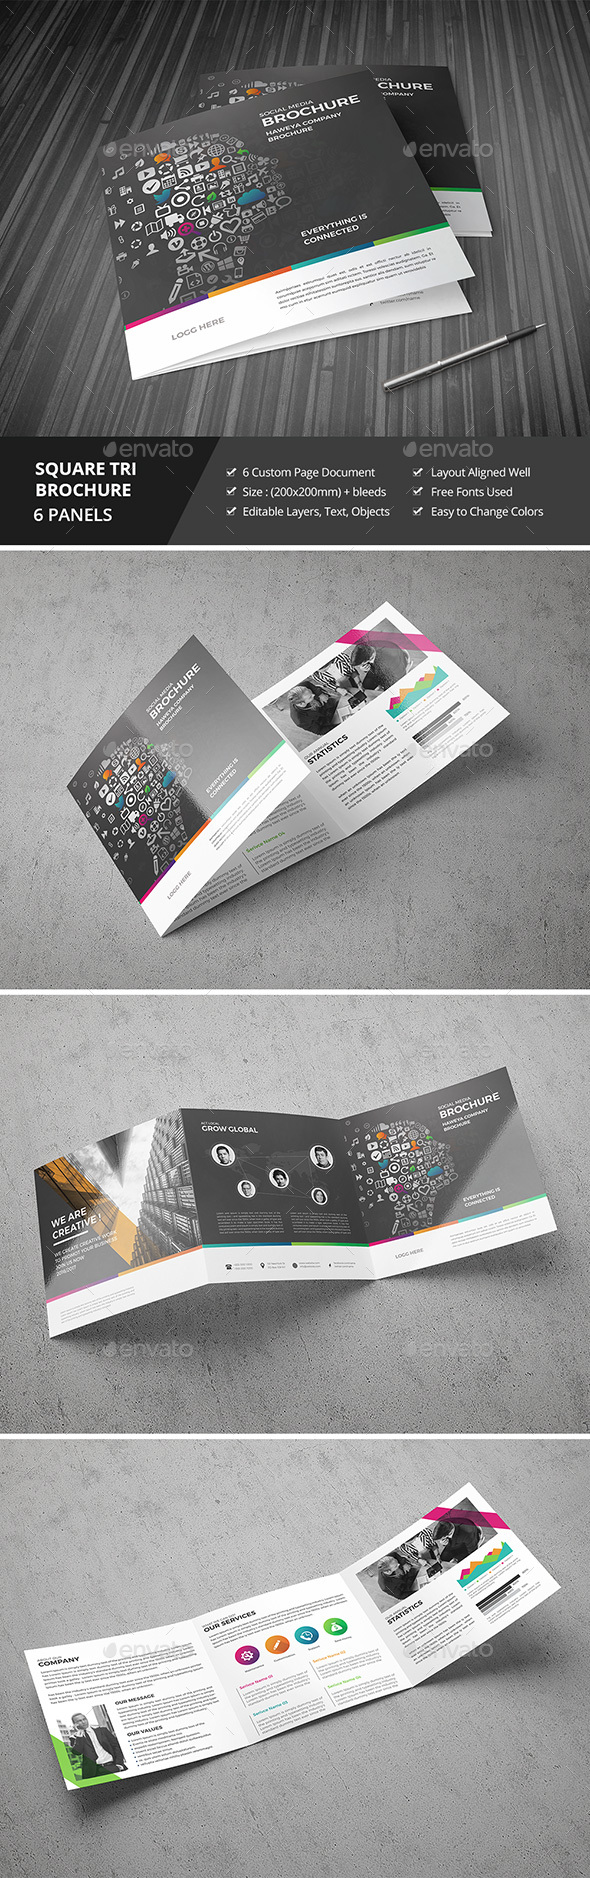 Haweya Tri-Fold Square Brochure 10 - Corporate Brochures